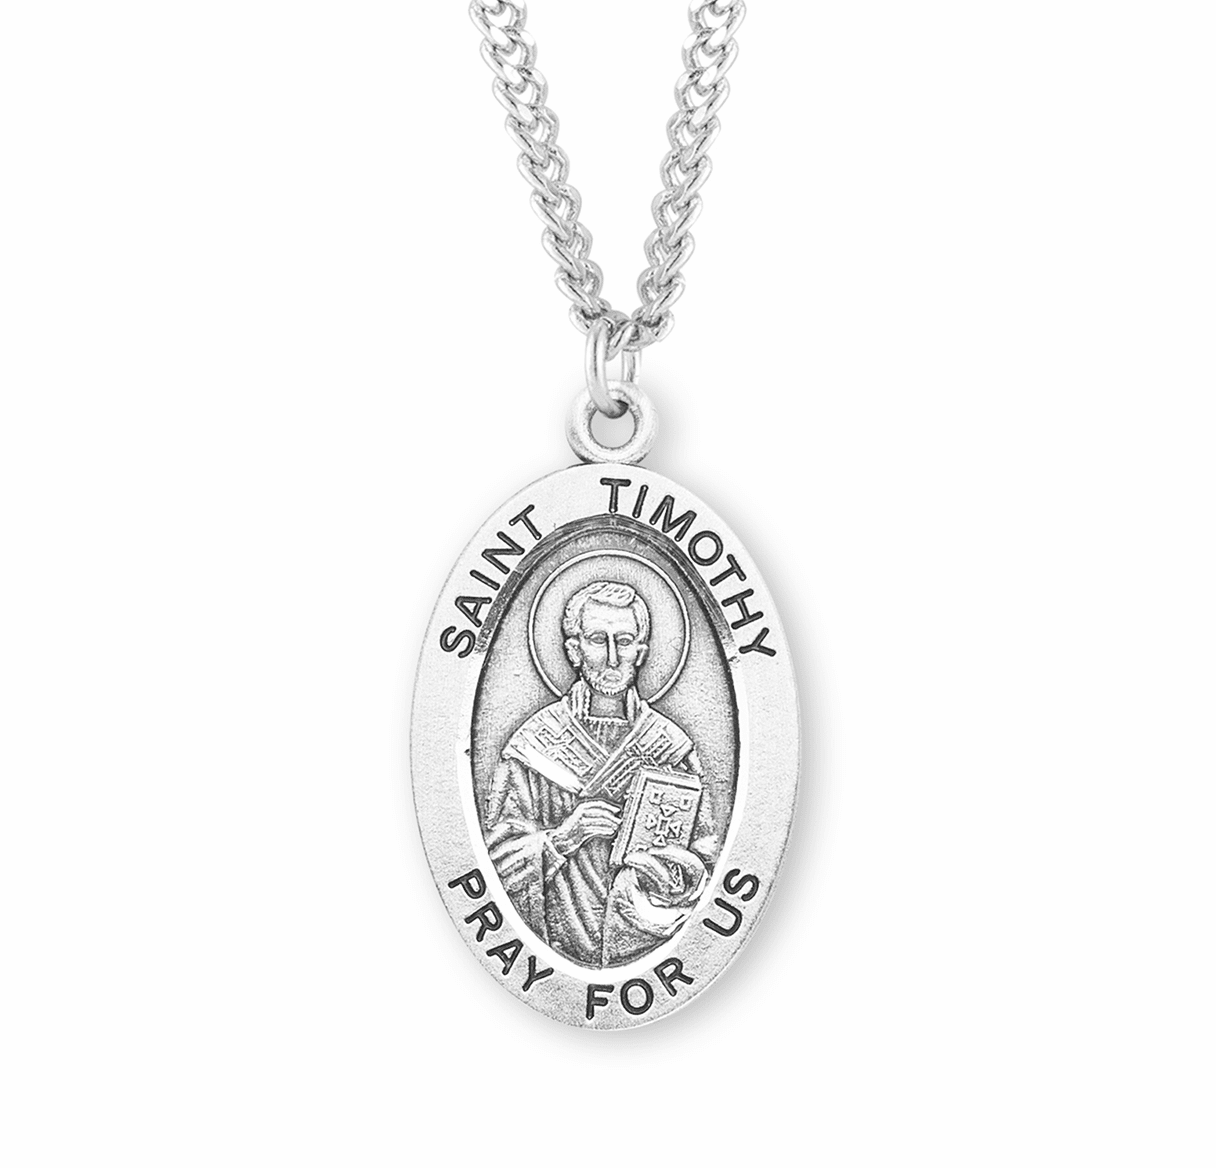 St Timothy Large Oval Sterling Silver Patron Saint Medals by HMH Religious